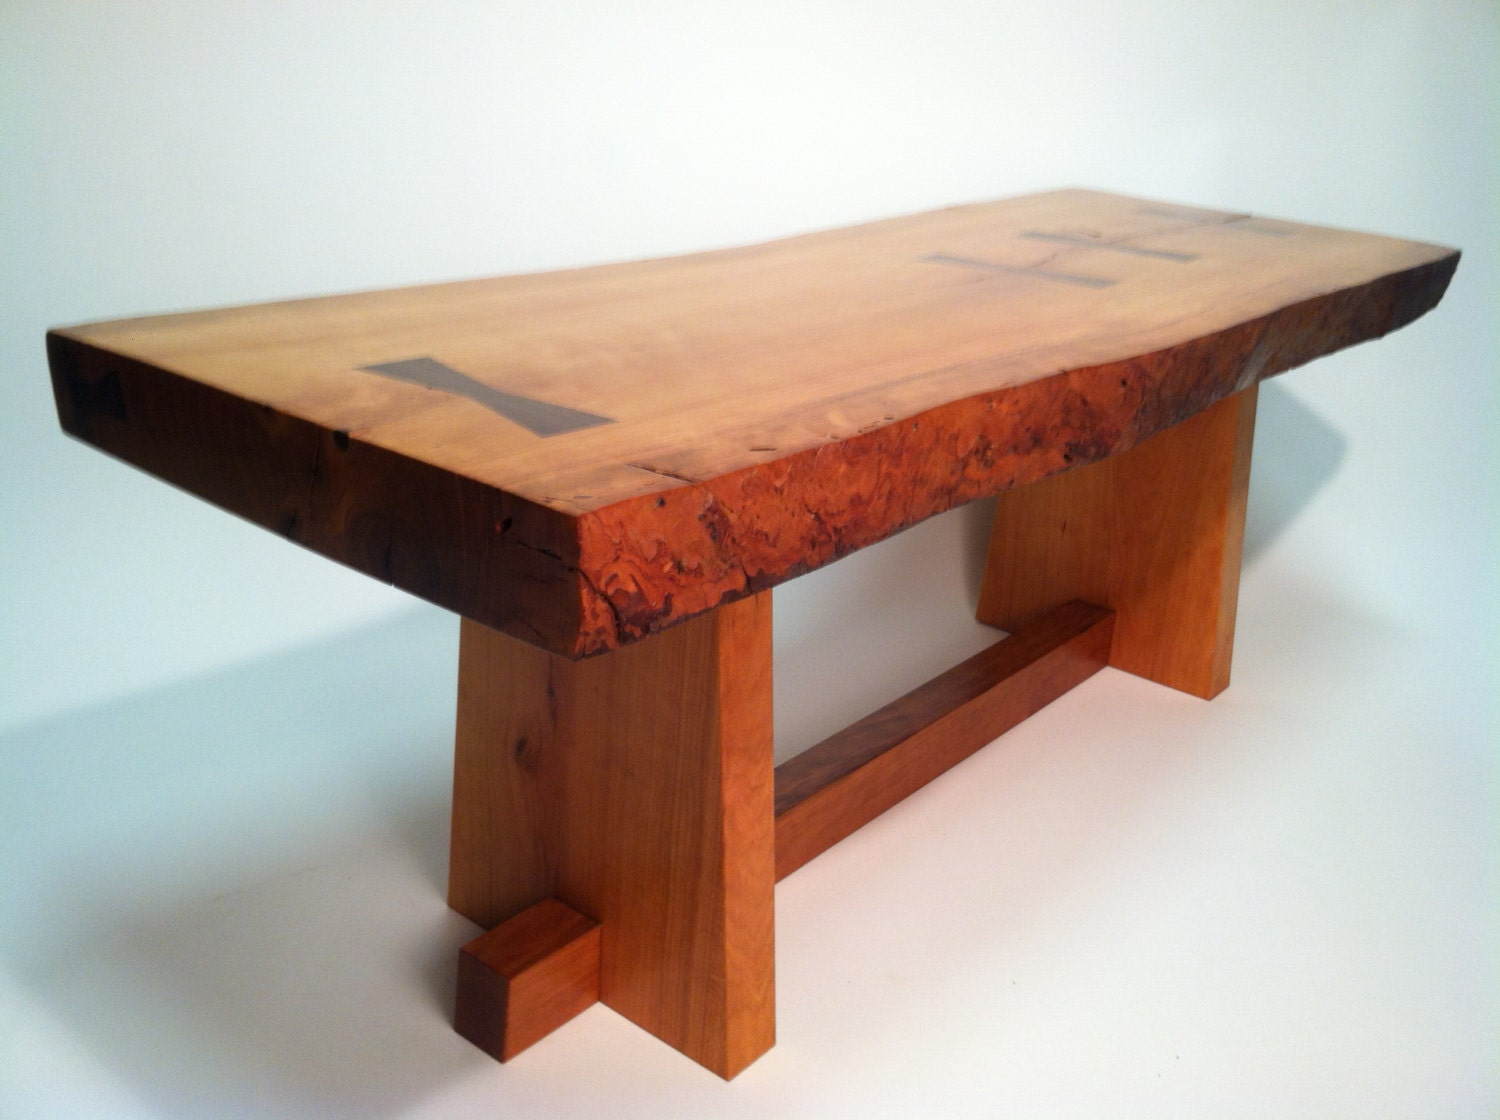 Live Edge Cherry Coffee Table Or BenchInspired By Nakashima